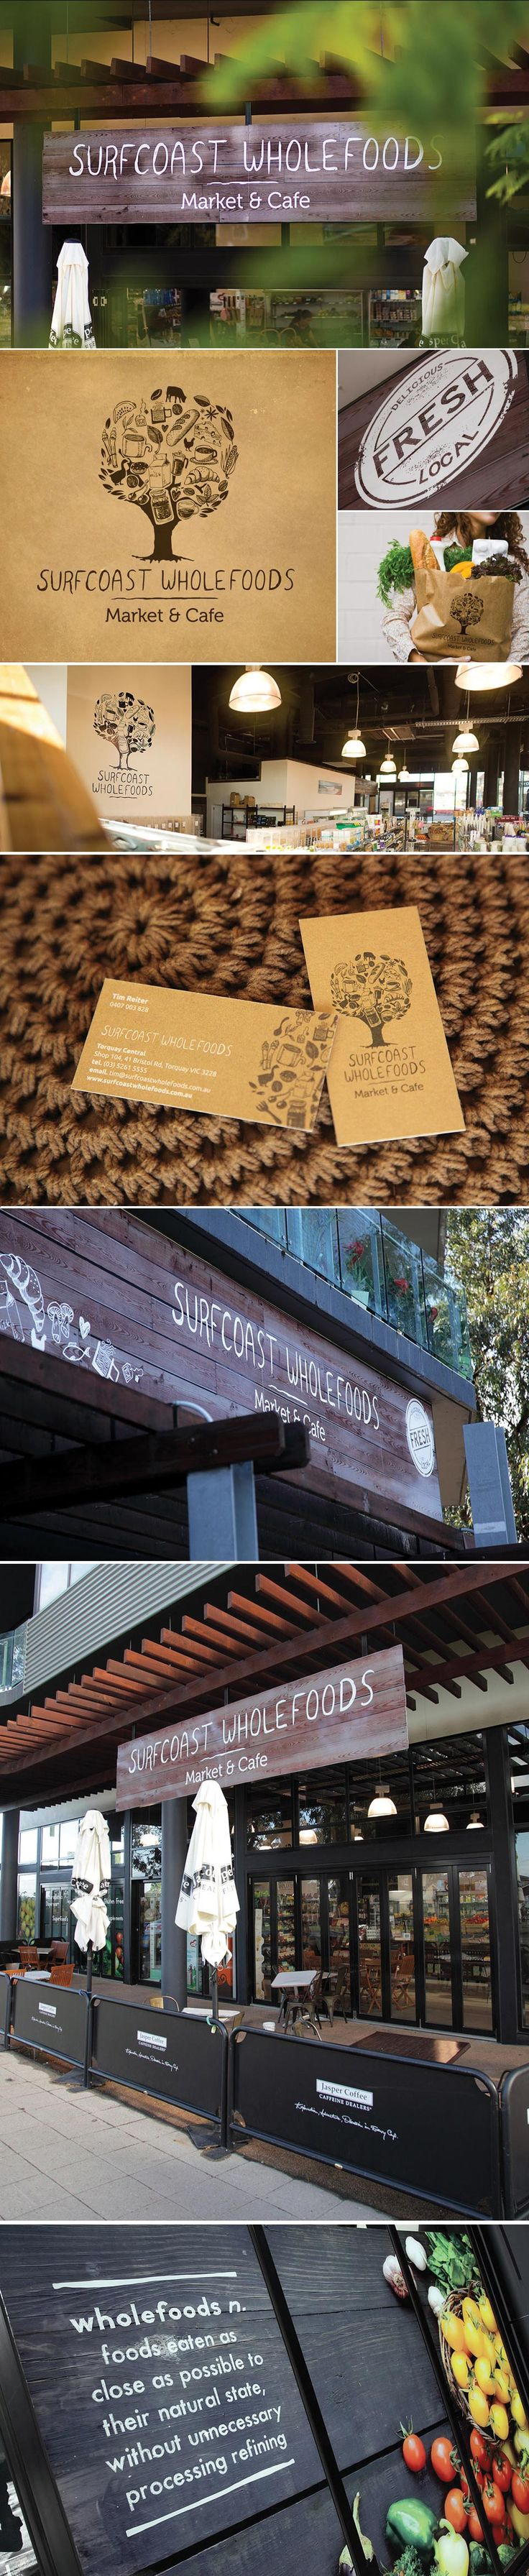 Surfcoast Wholefoods branding. Surfcoast Wholefoods specialist in organic and gluten free grocery products and produce.